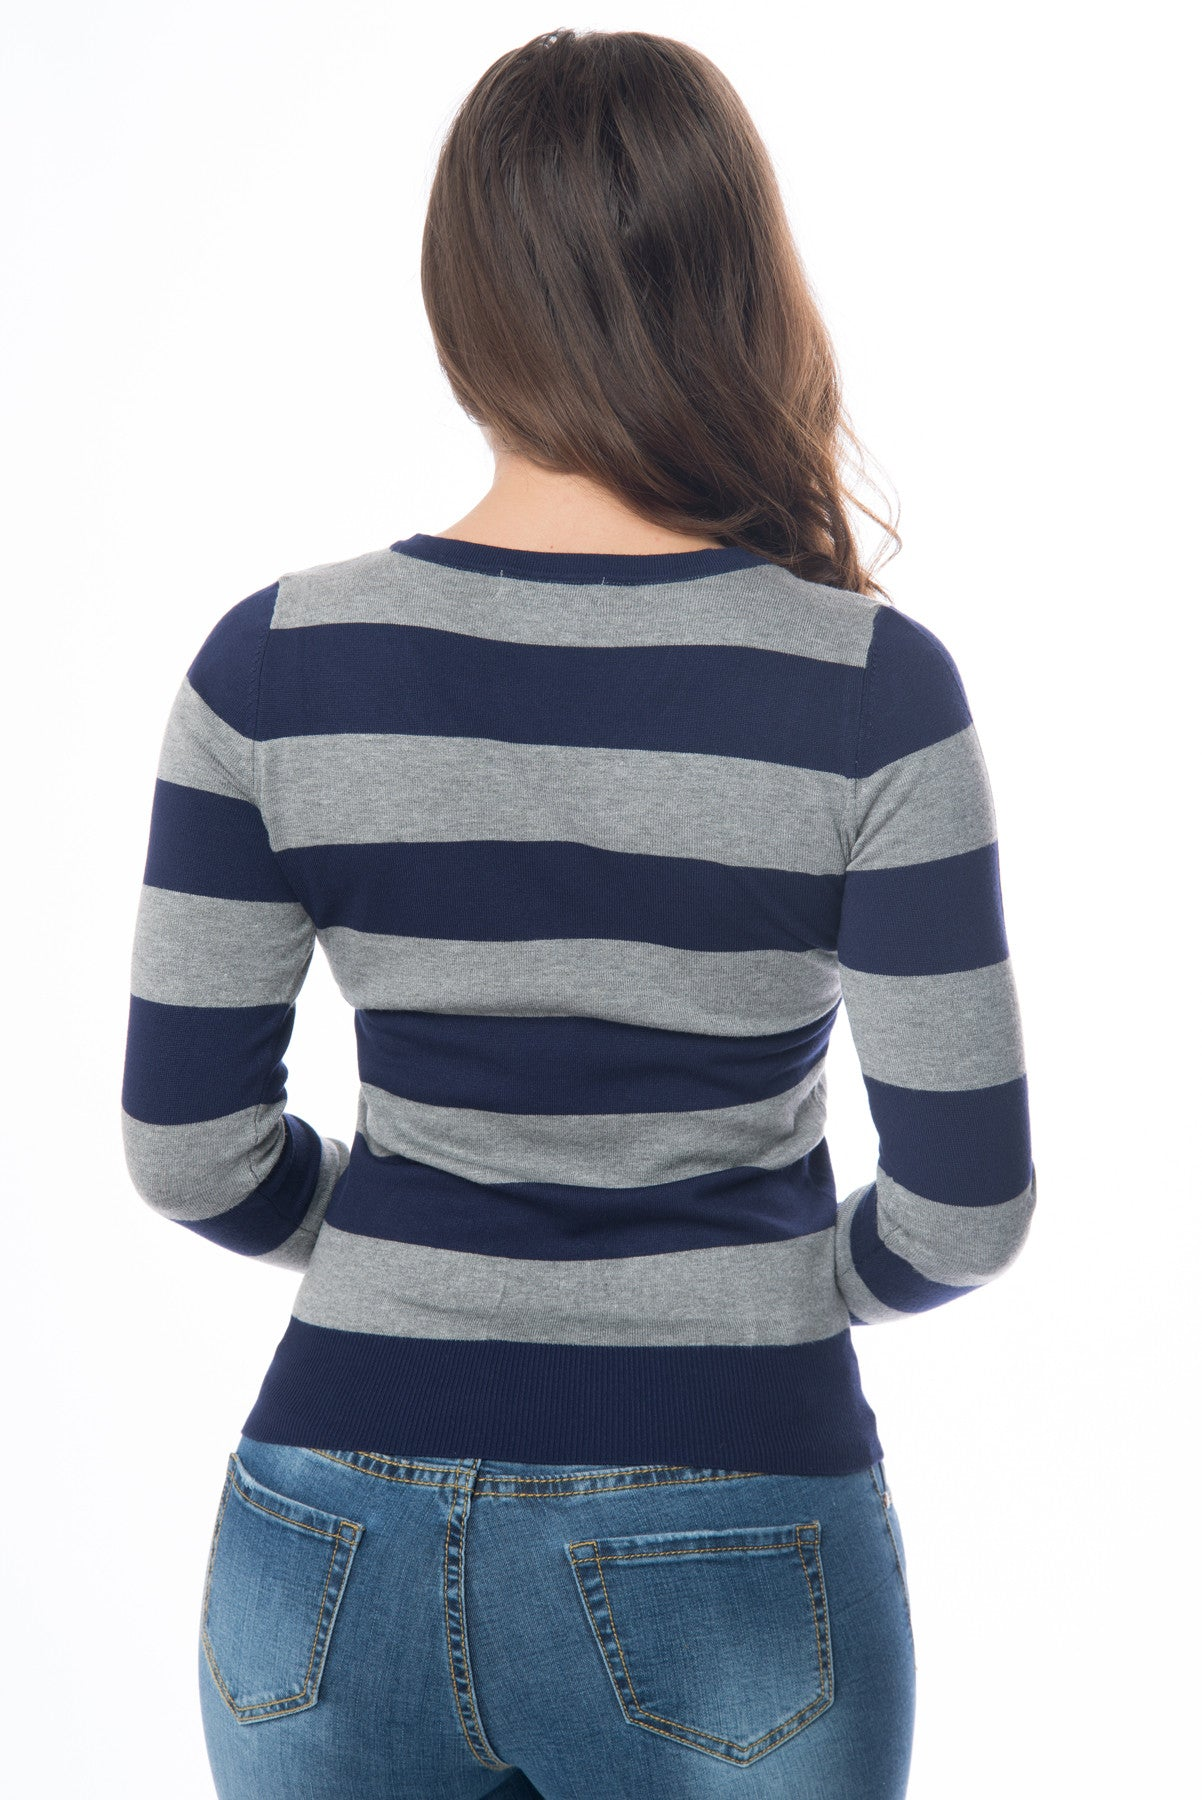 Cameron Striped Sweater Blue - Fashion Effect Store  - 2